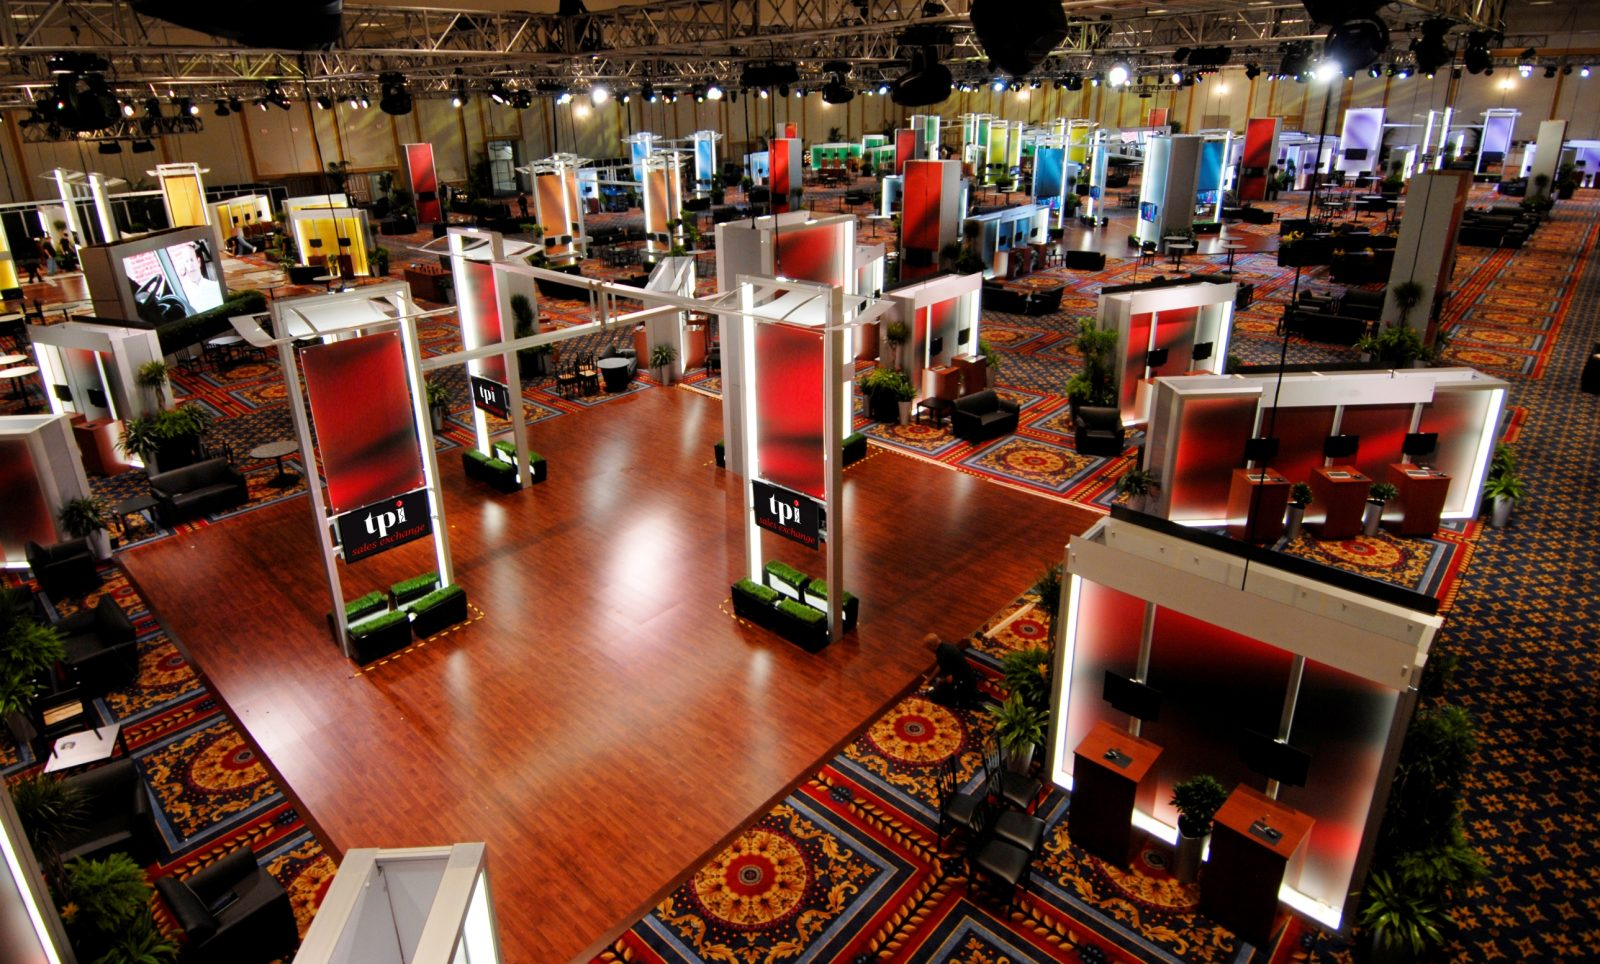 Reasons Why You Should Exhibit Your Business at a Trade Show